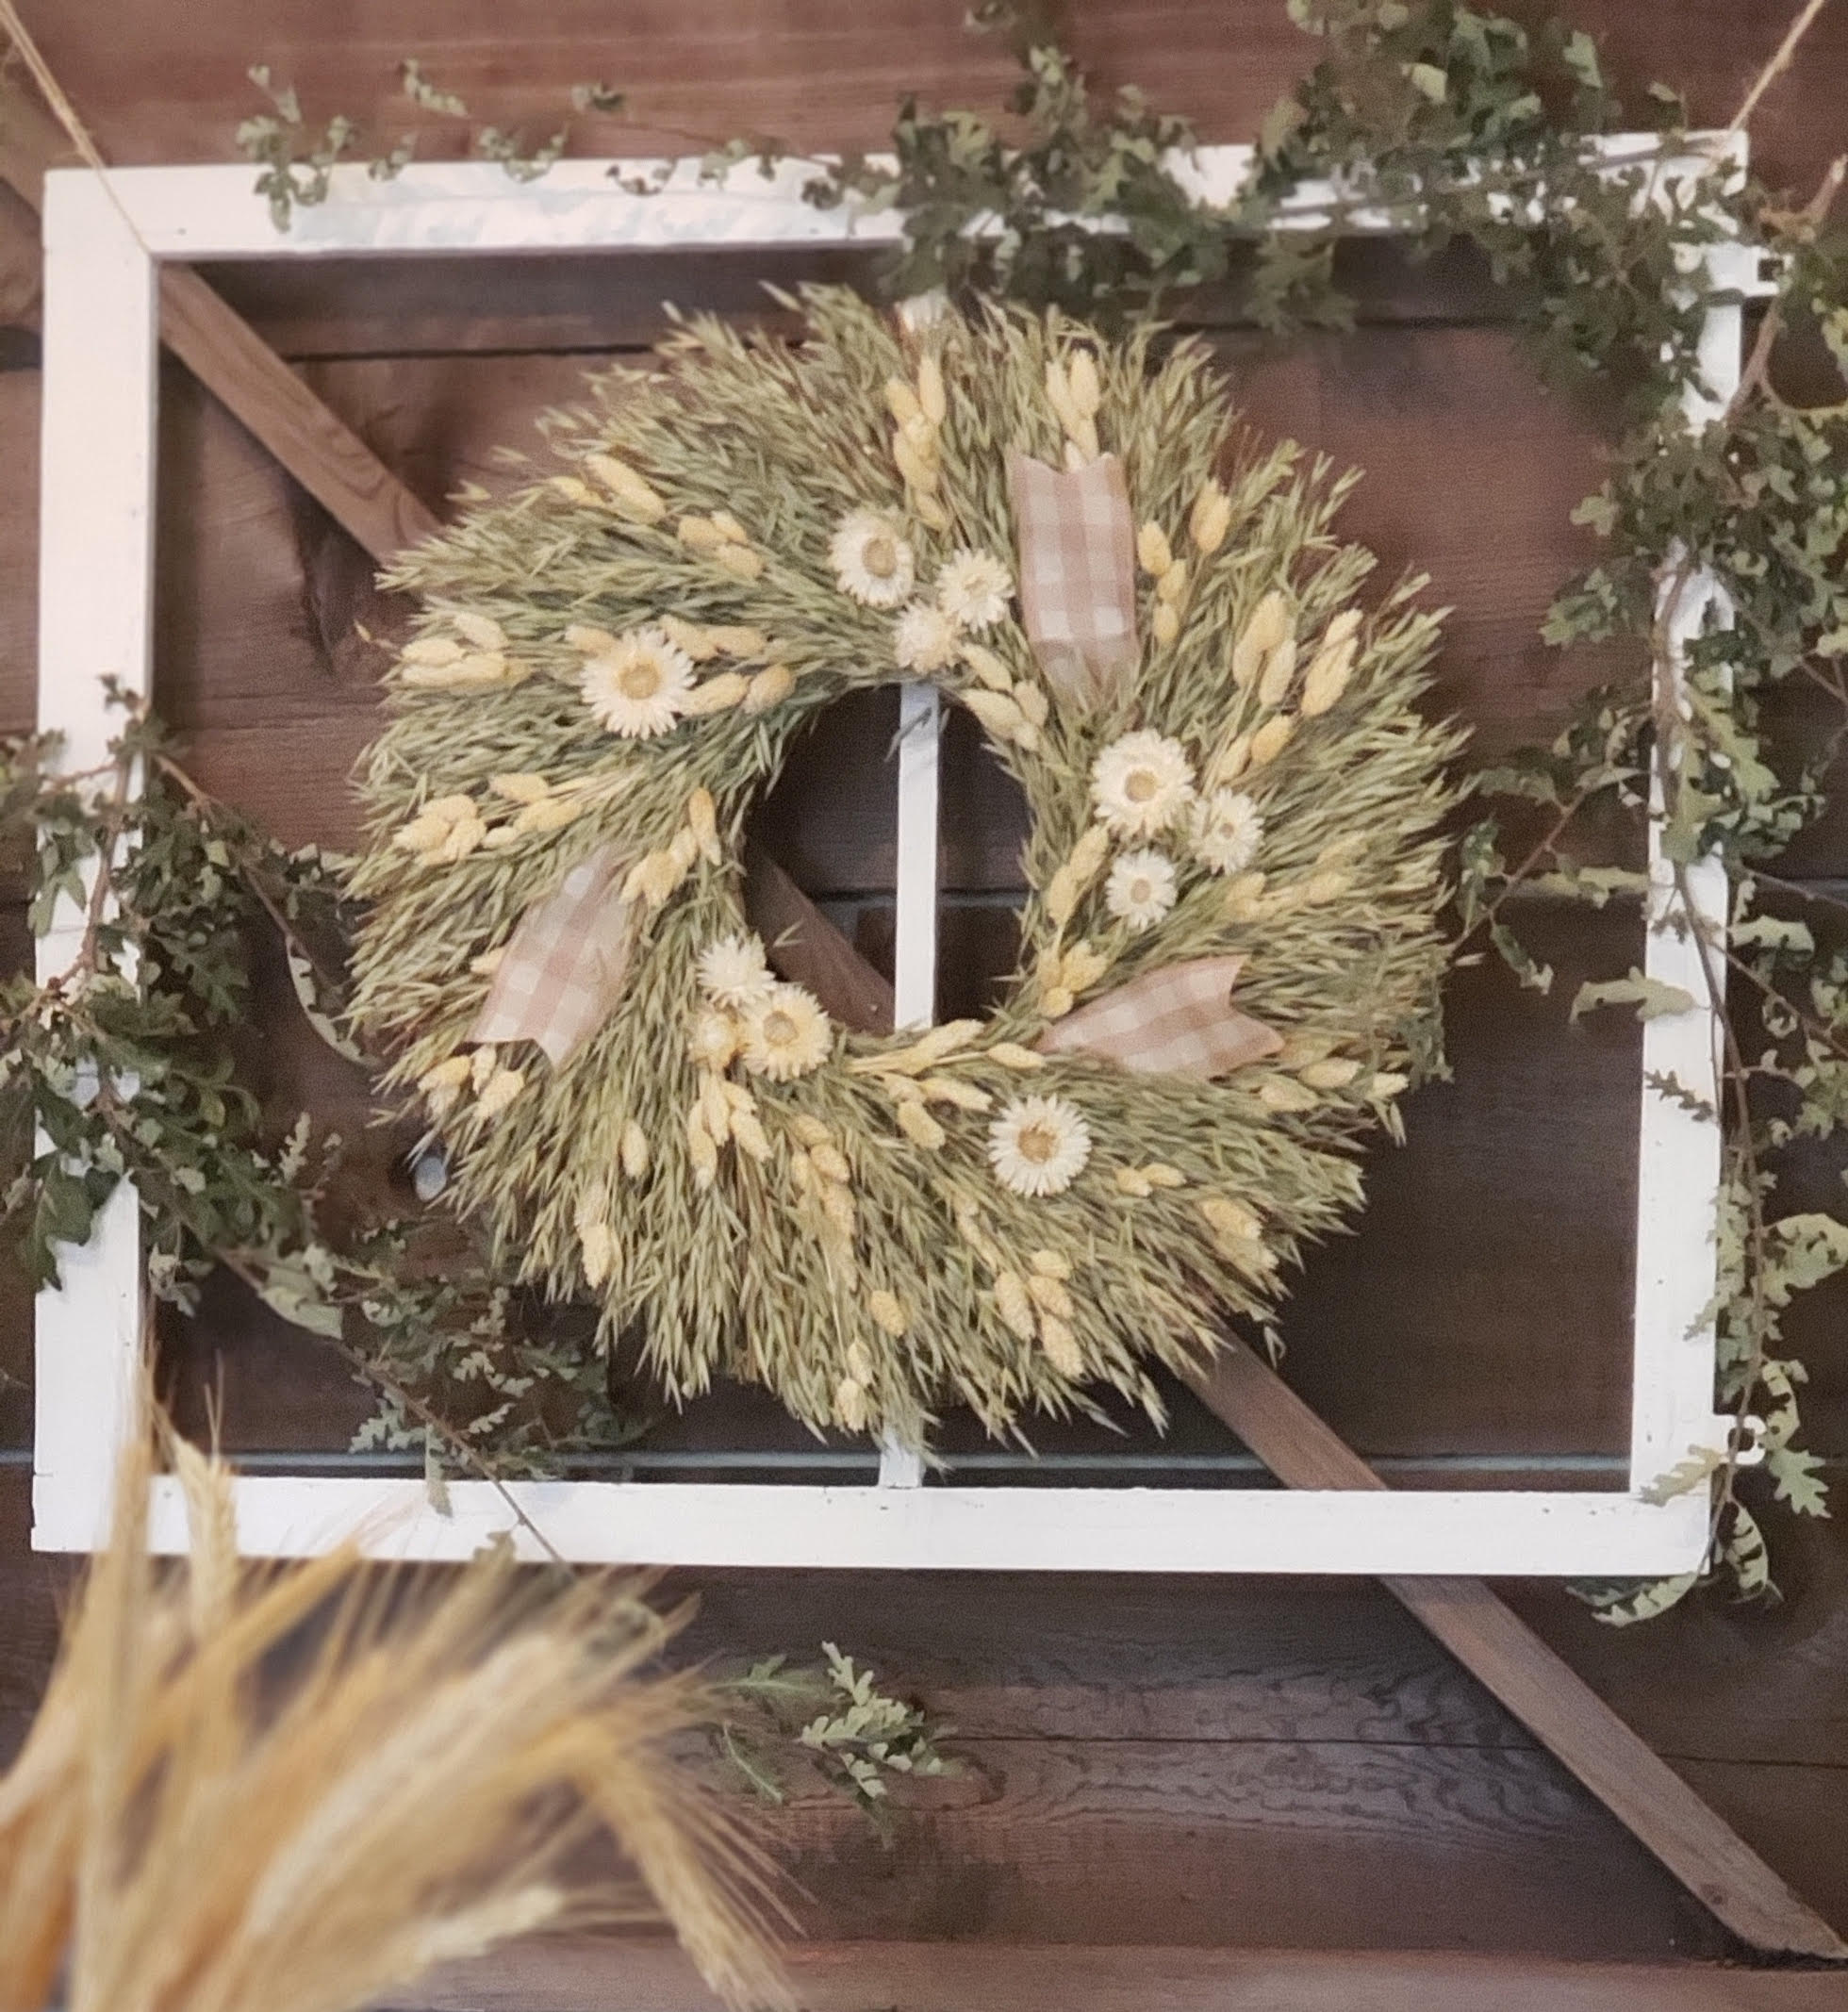 Sun kissed wreath above the table